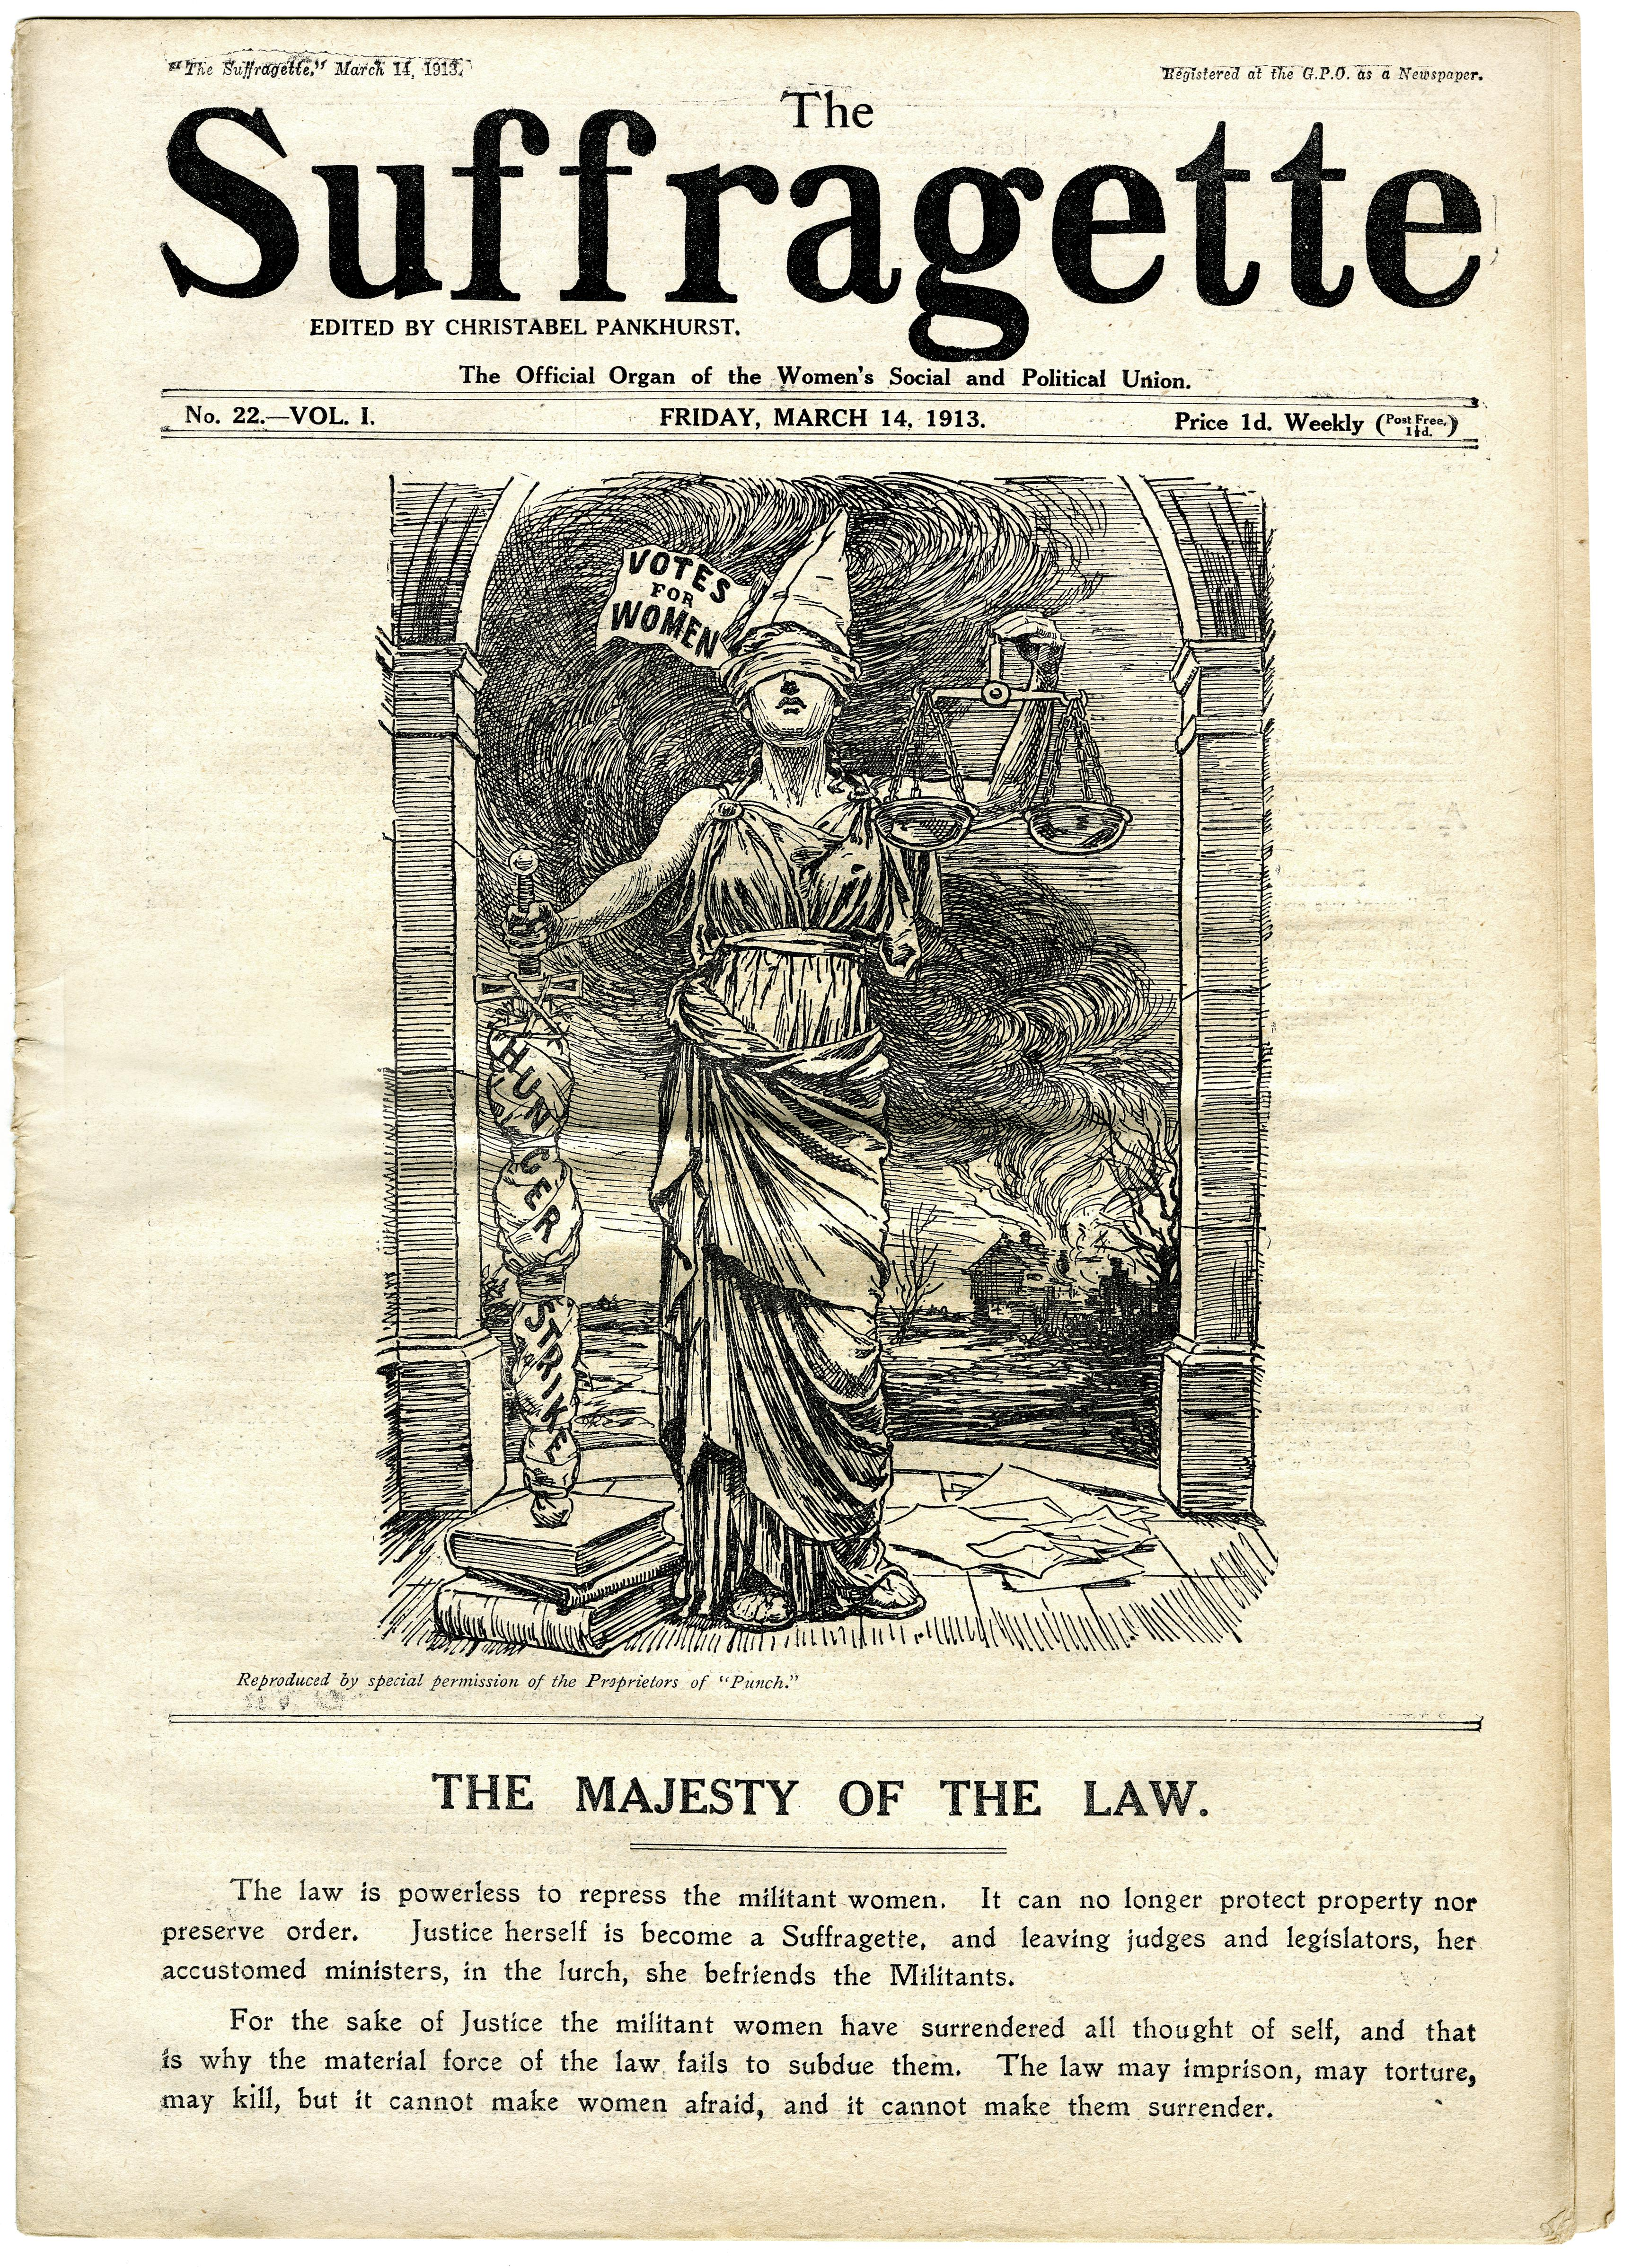 Suffragettes on file - The National Archives